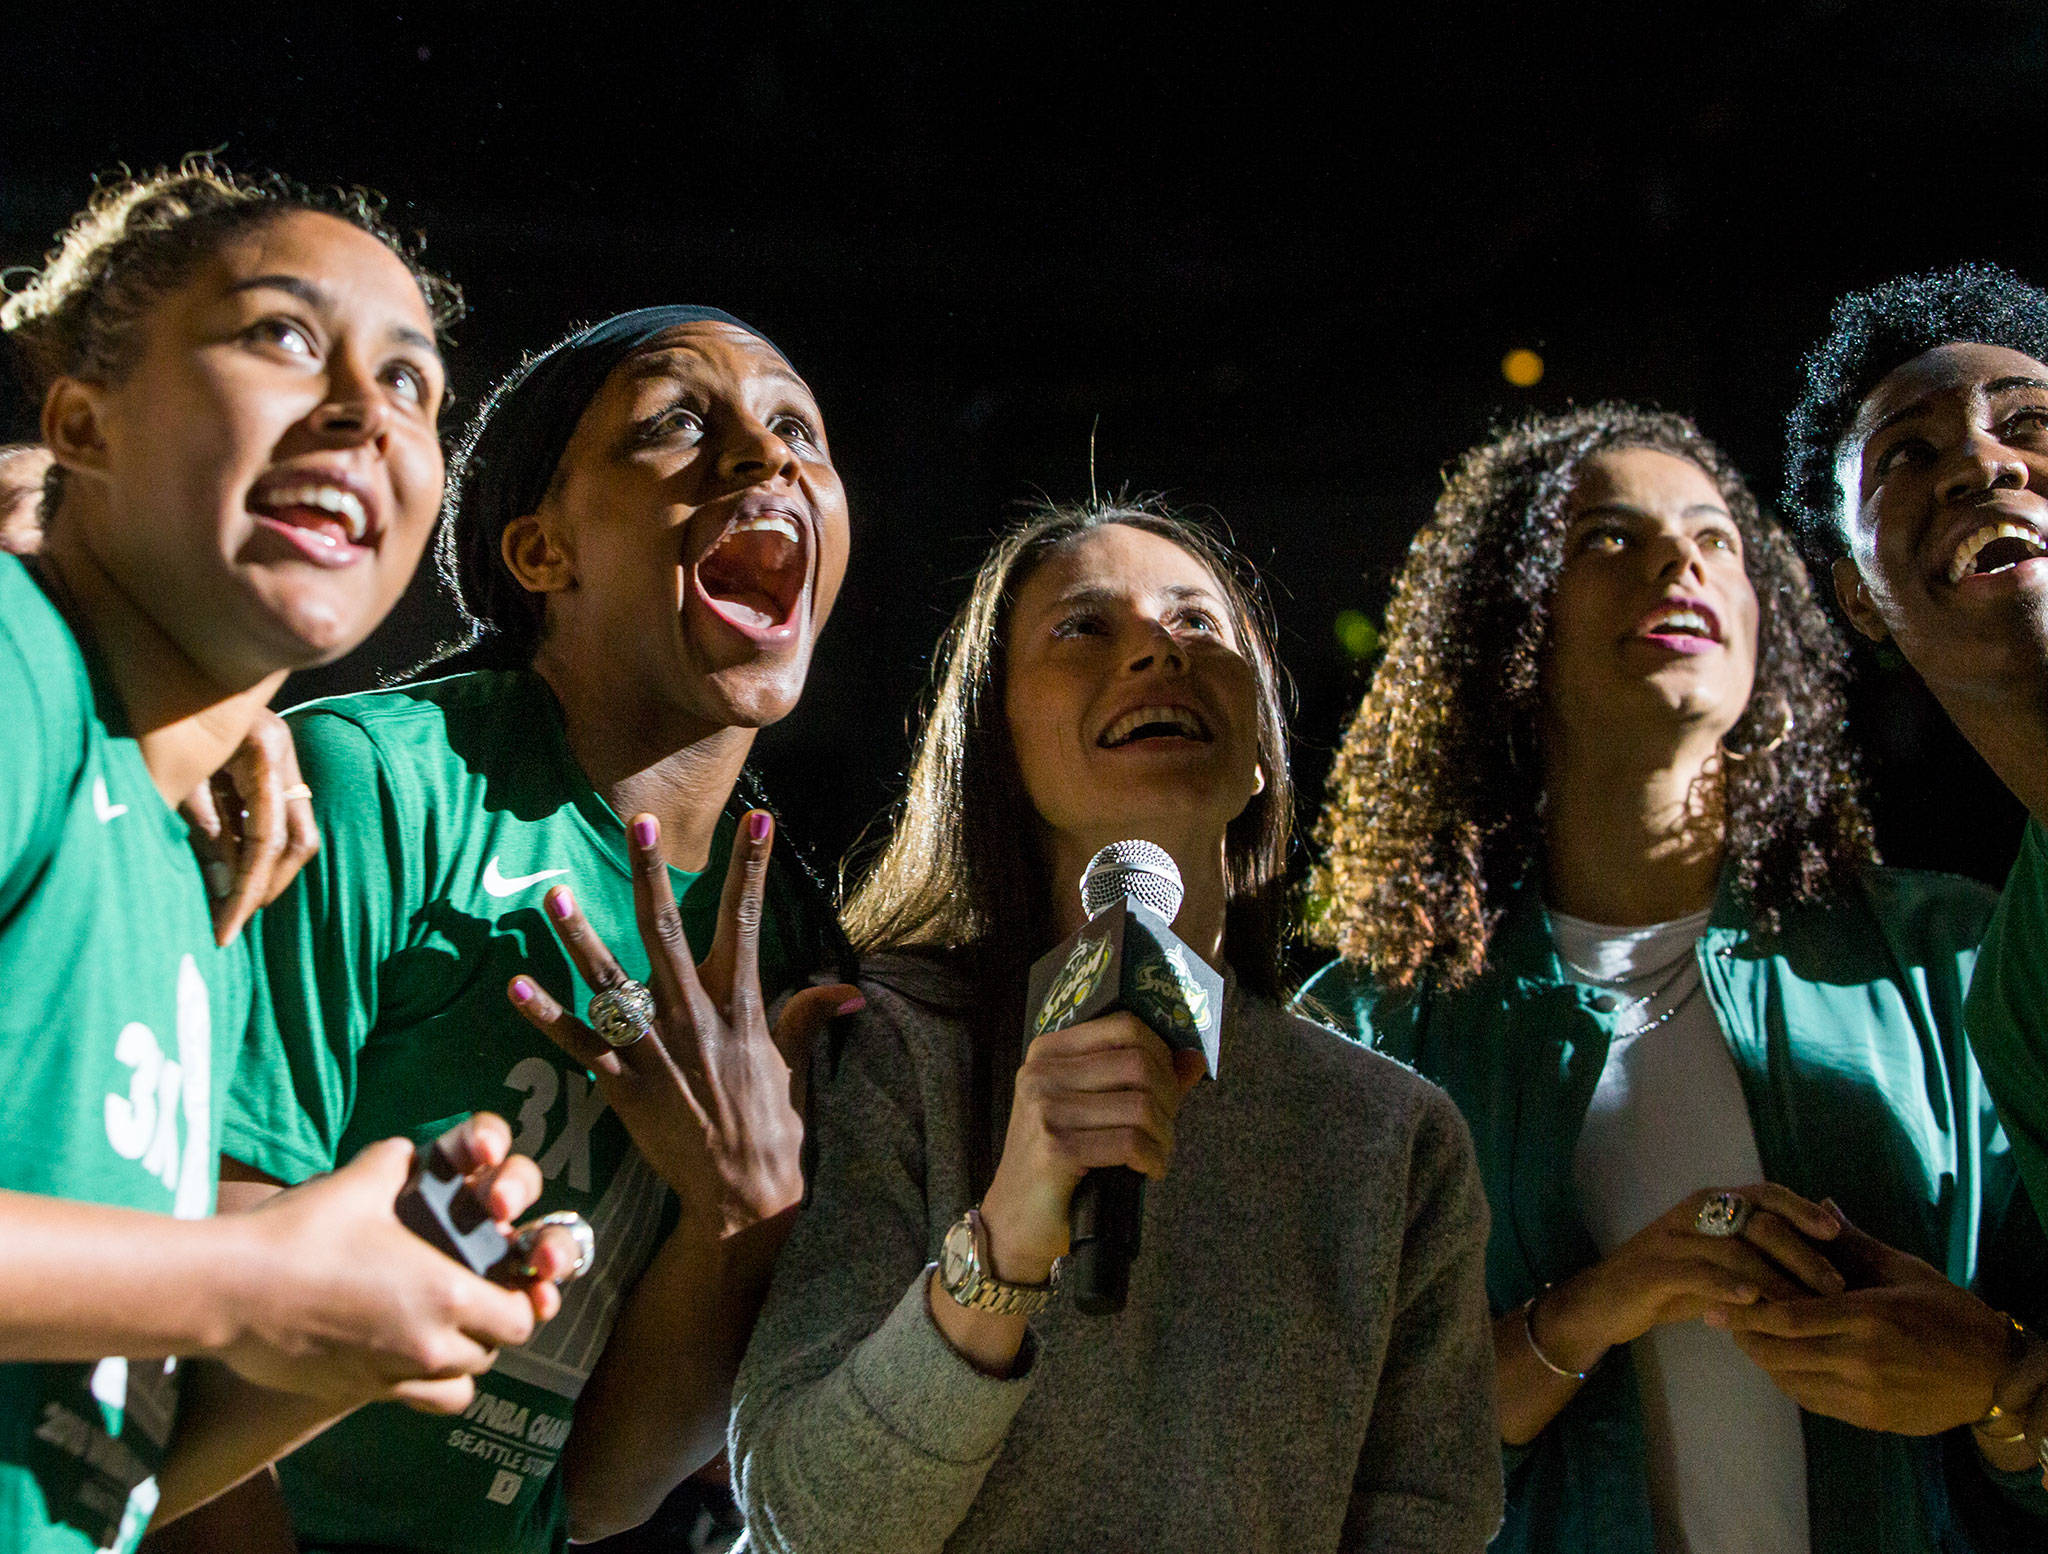 Seattle Storm players (from left) Kaleena Mosqueda-Lewis, Crystal Langhorne, Sue Bird, Alysha Clark and Natasha Howard react to their championship banner being revealed during a pregame ceremony in May 2019 at Angel of the Winds Arena in Everett. Because of the pandemic, the Storm won't be playing any games in Everett this year. (Olivia Vanni / Herald file)